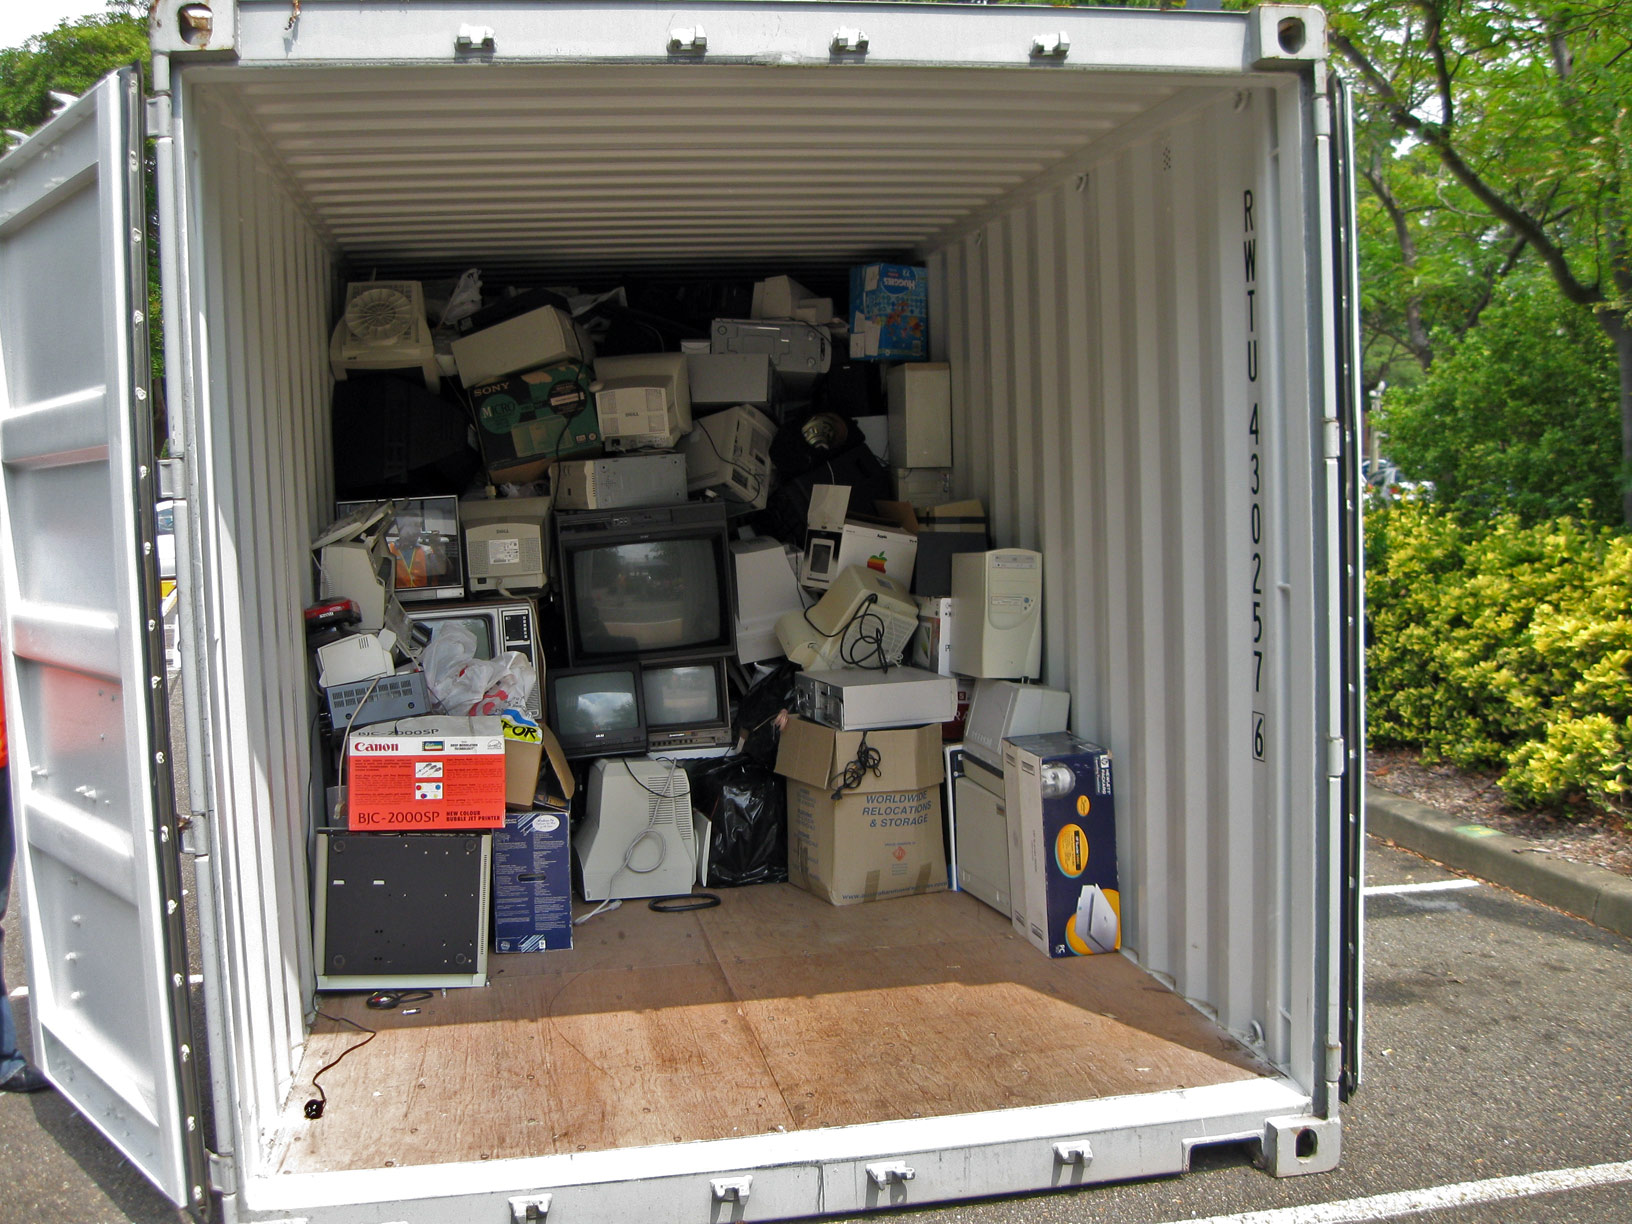 E-waste in a disposal carrier. (Photo: Mosman Council/ Flickr)